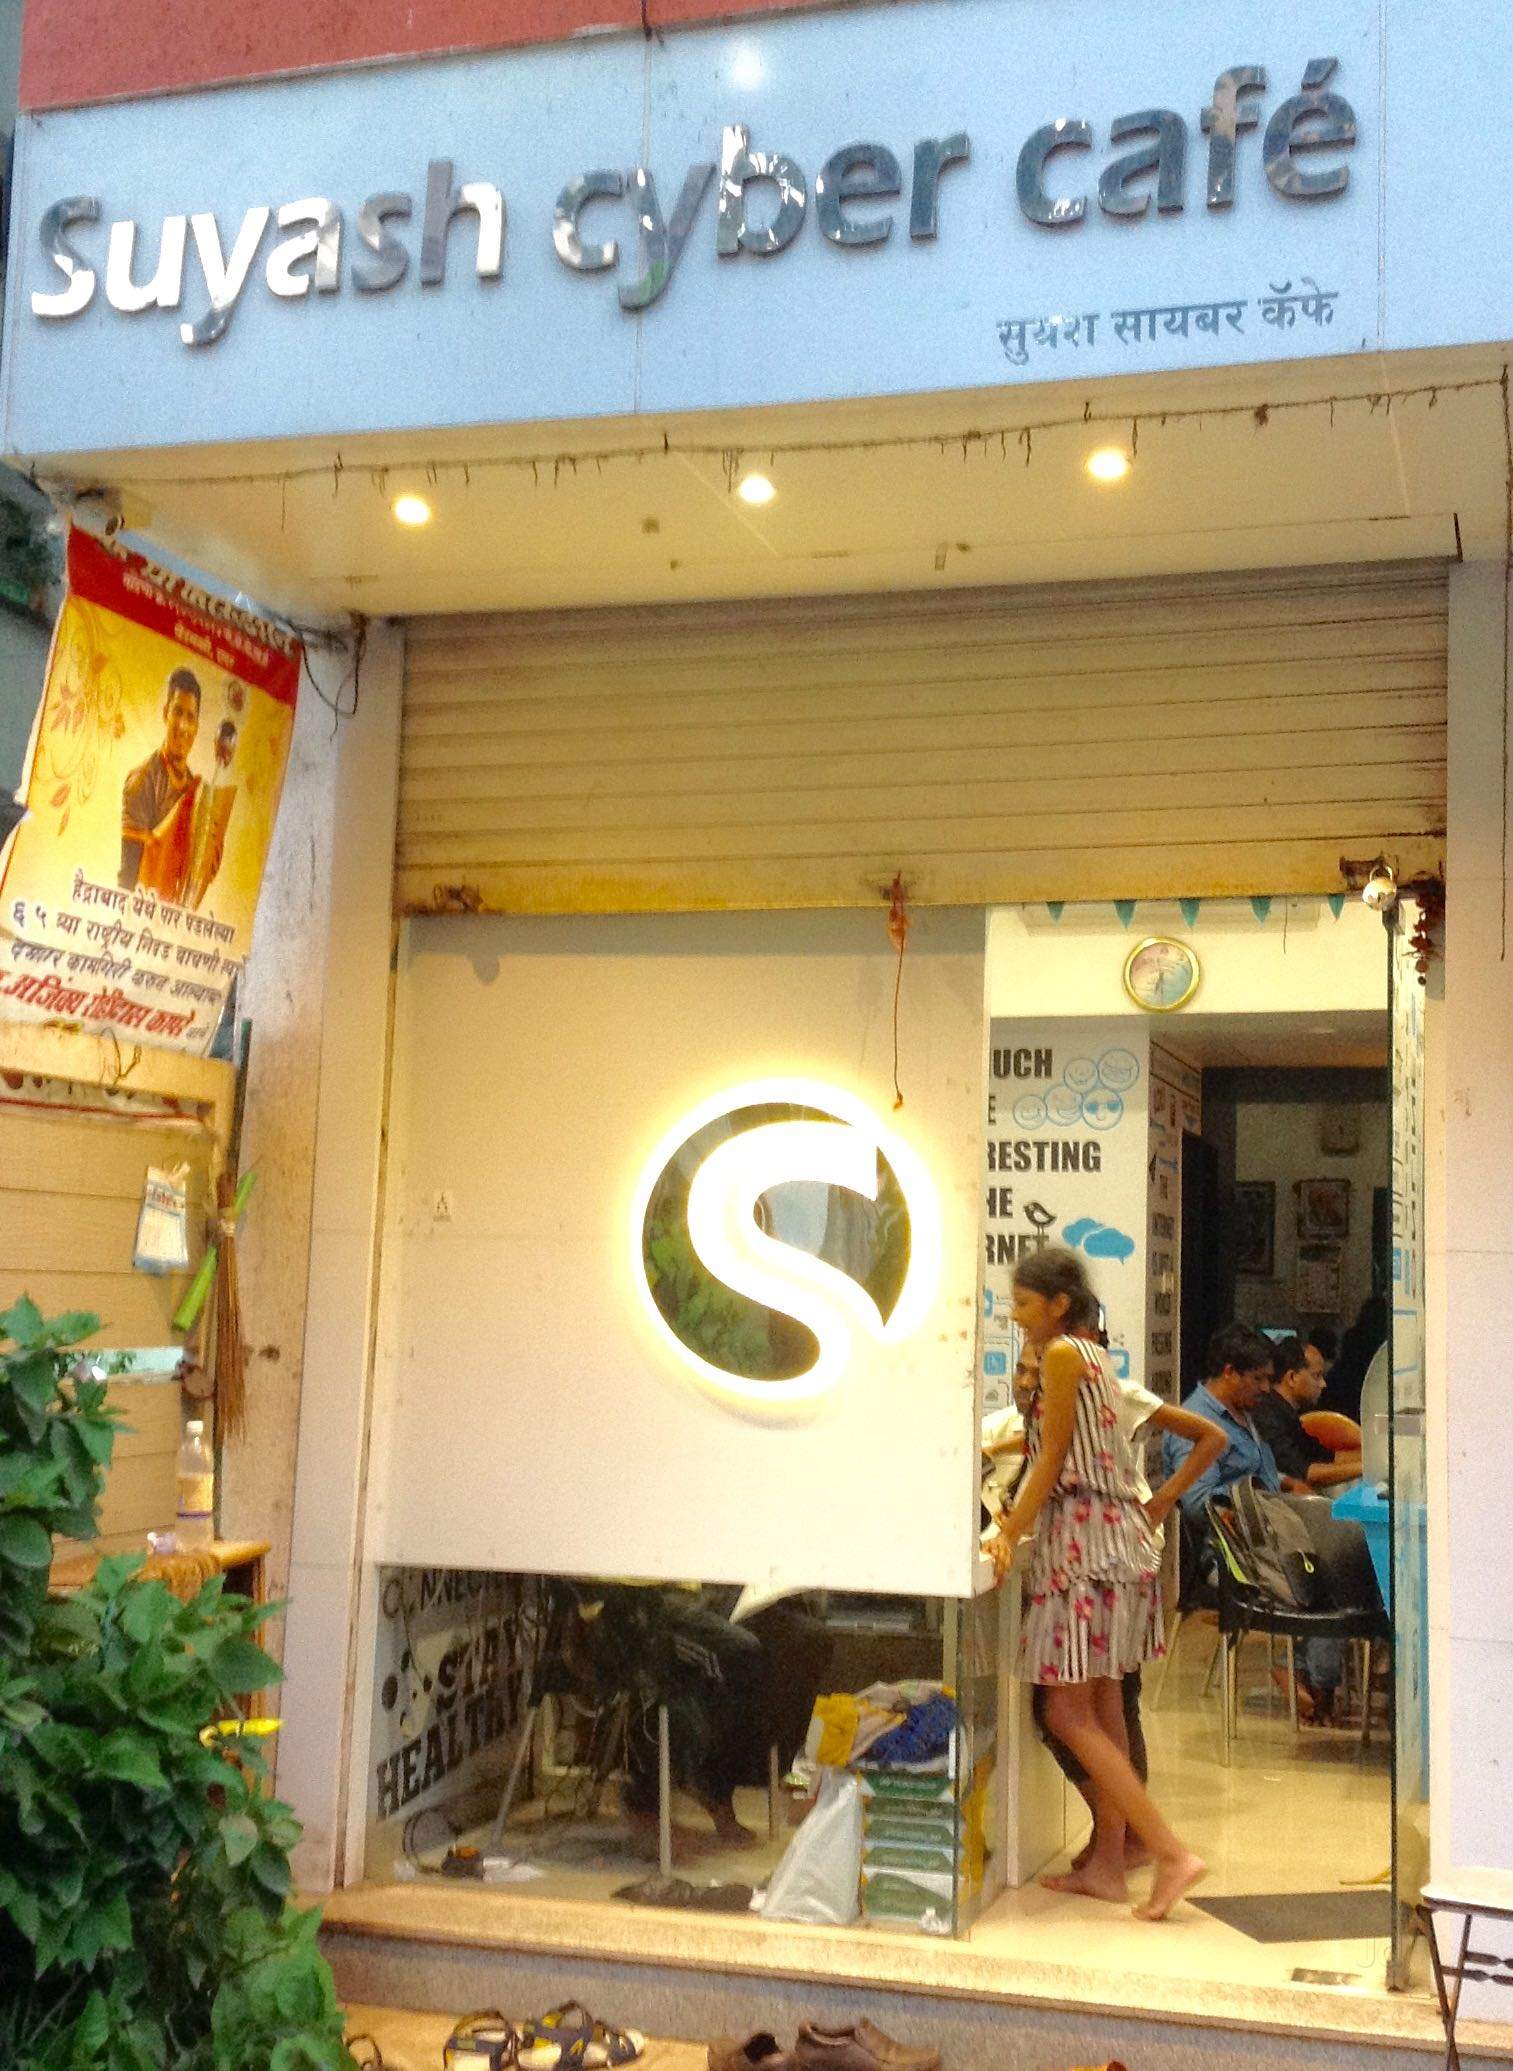 Top Cyber Cafes in Dadar West, Mumbai - Best Internet Cafes - Justdial